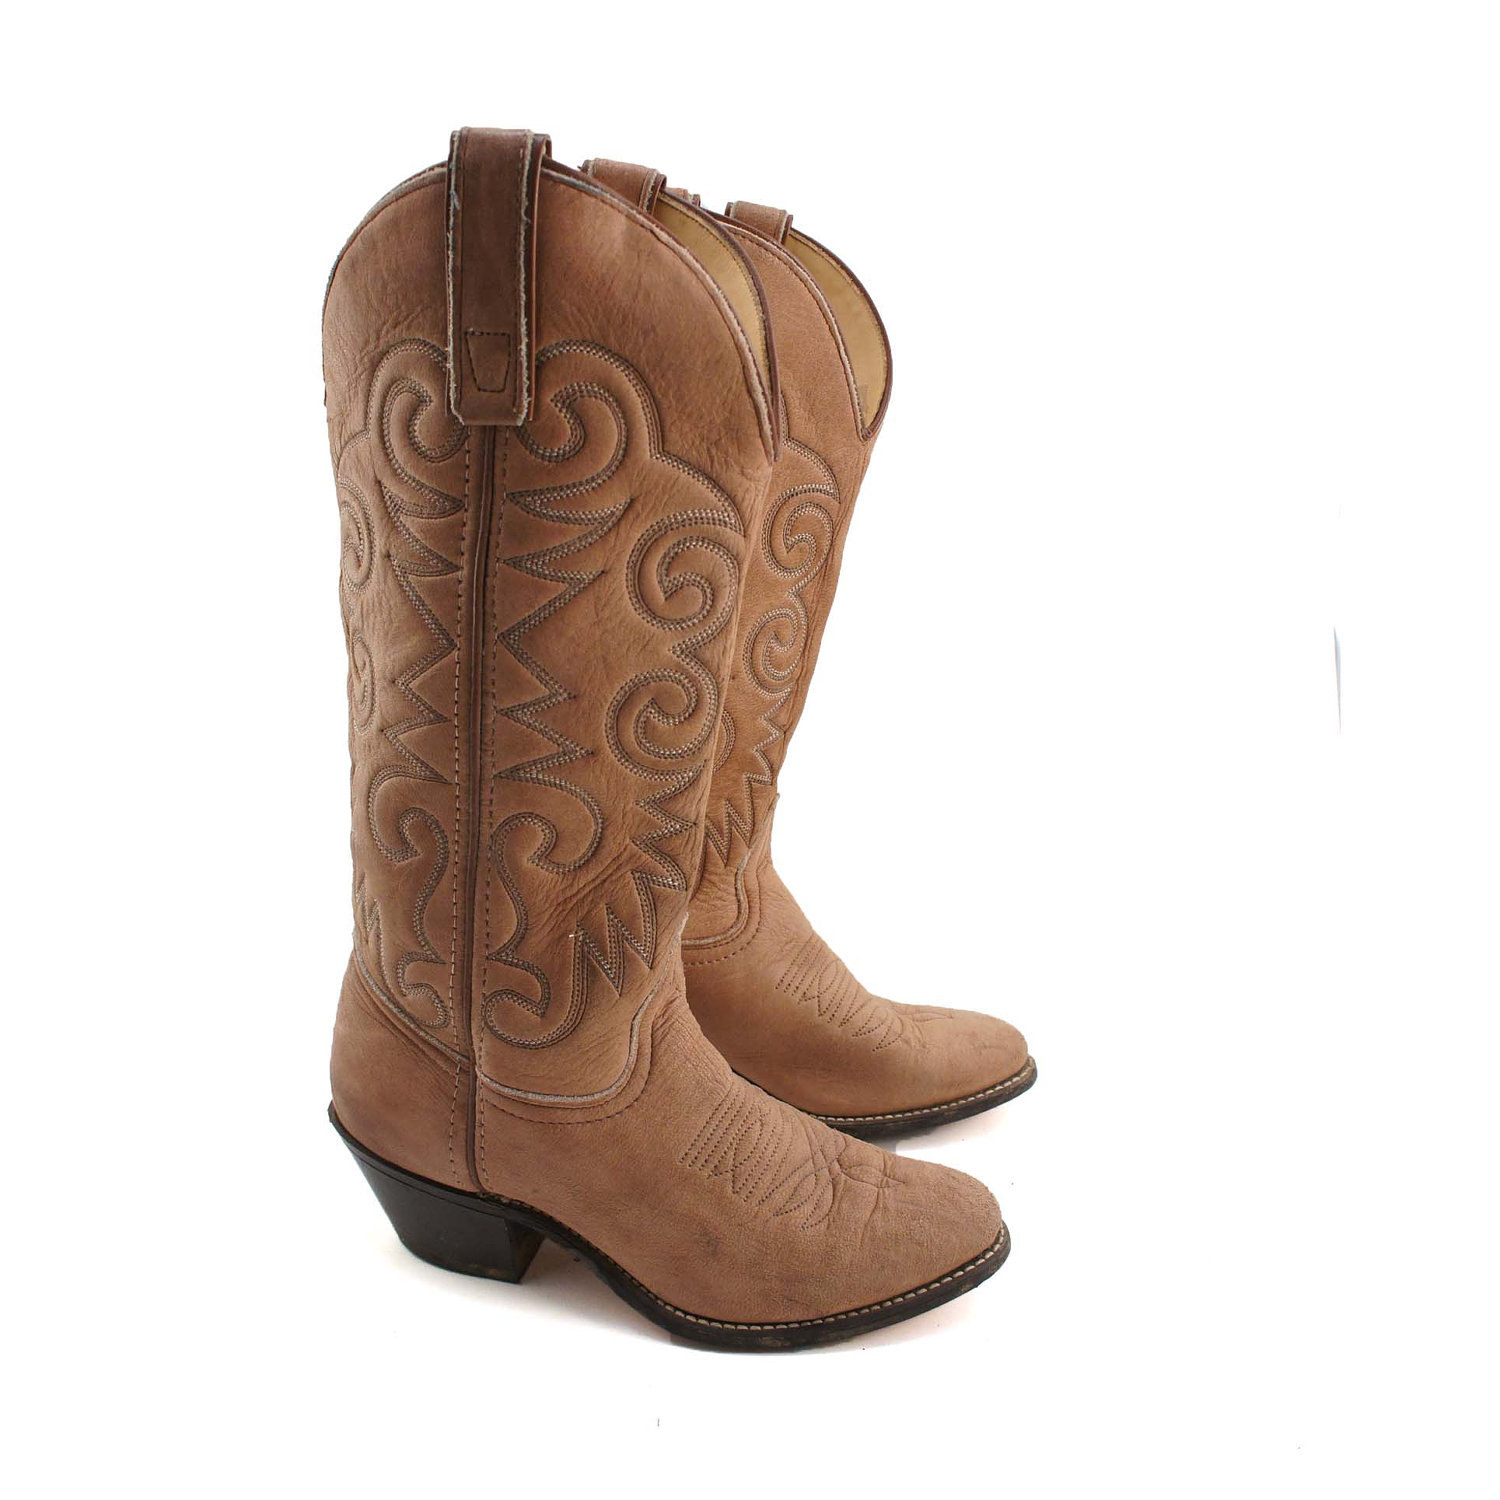 Brown Cowgirl Boots For Women NERbHDW0